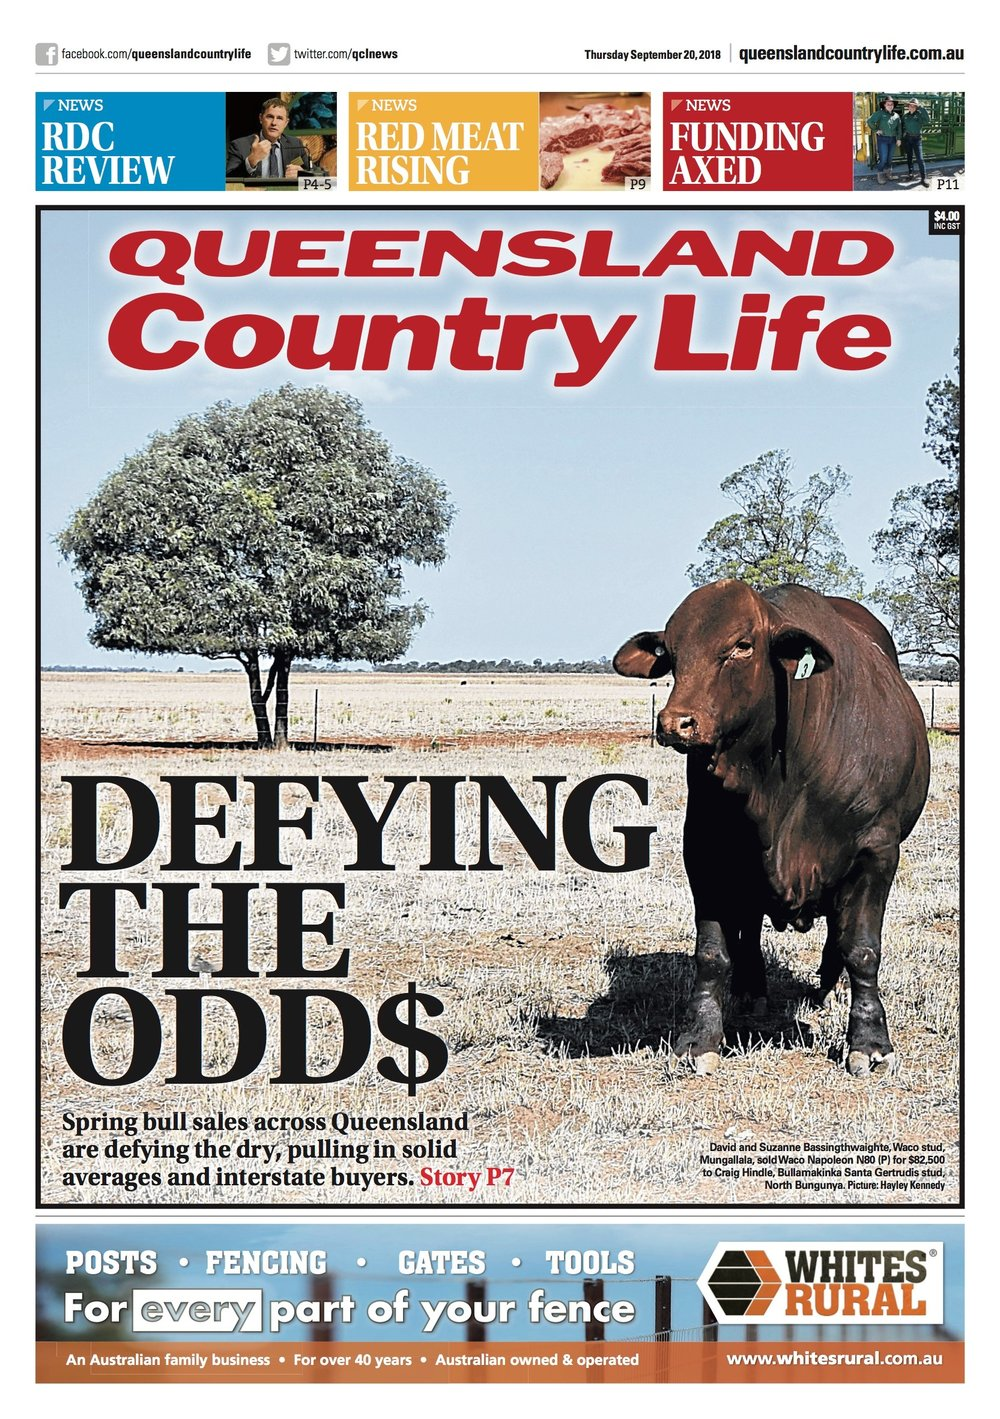 WACO QCL Front Cover 20 Sept 2018.jpg